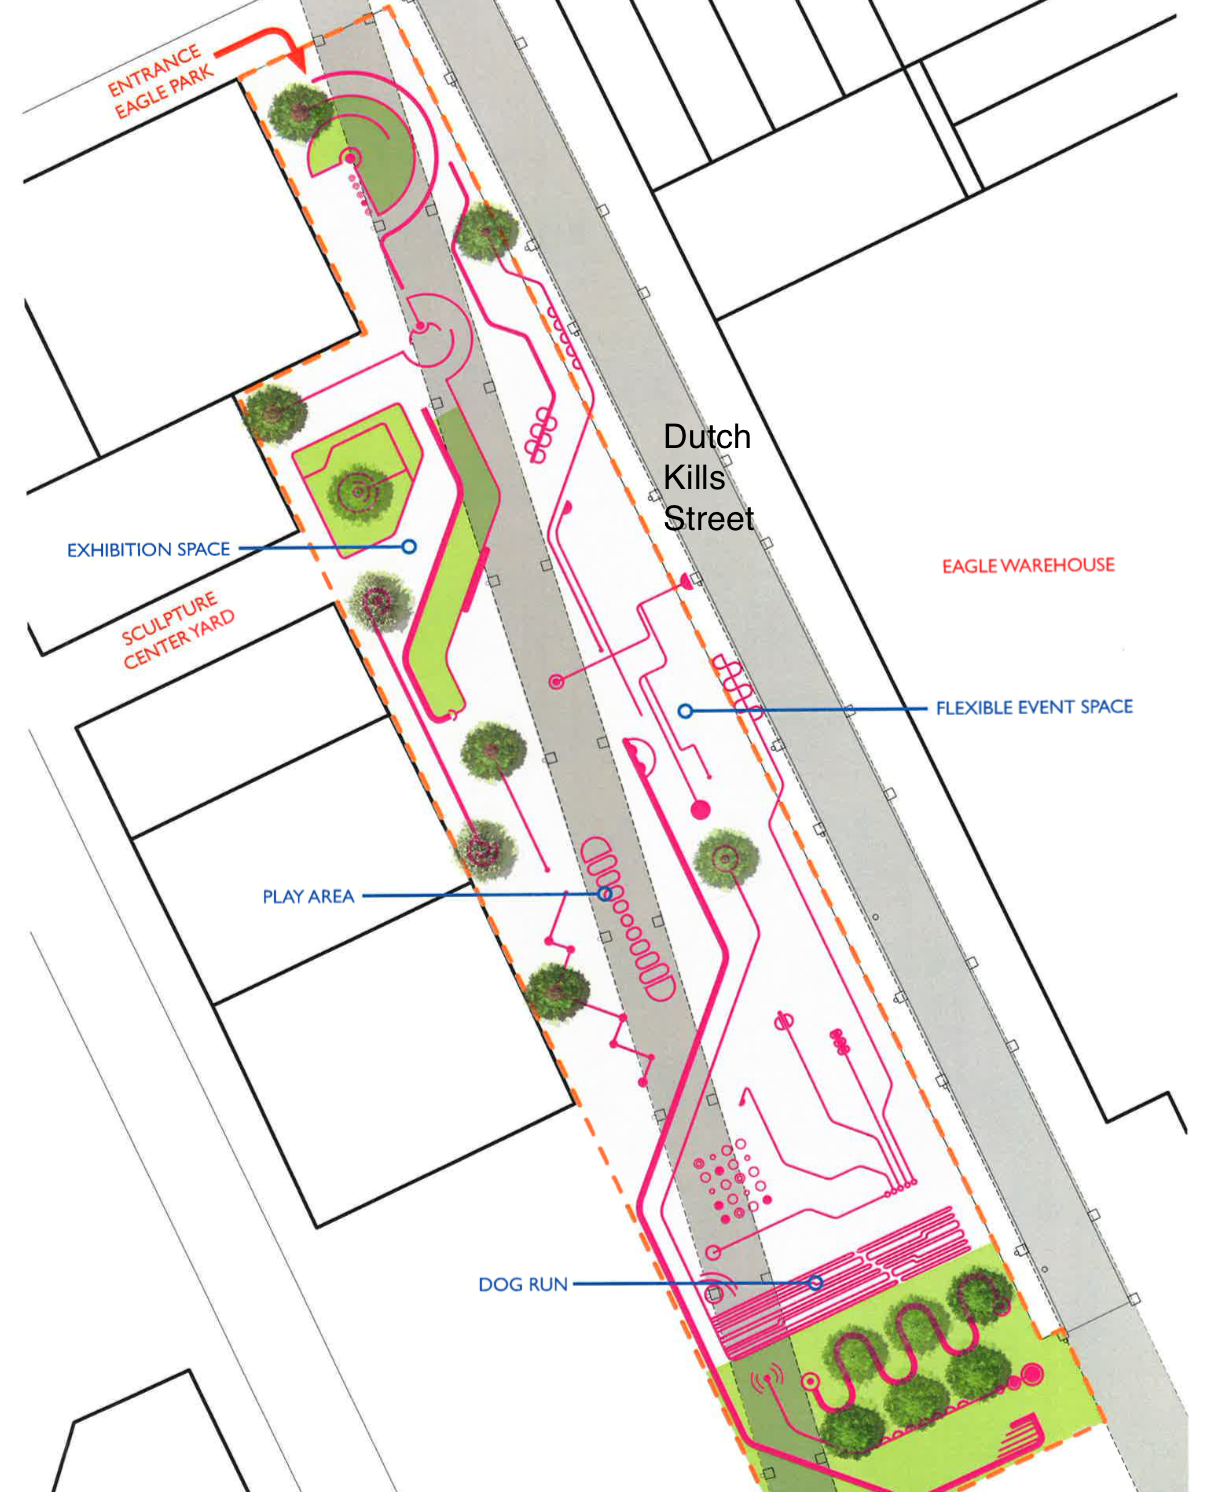 Infinite Possibilities - The diversity of spaces throughout the ramplands can be adapted to serve different needs within our community - dog run, play areas, event spaces, biodiversity, public art, hang out space...